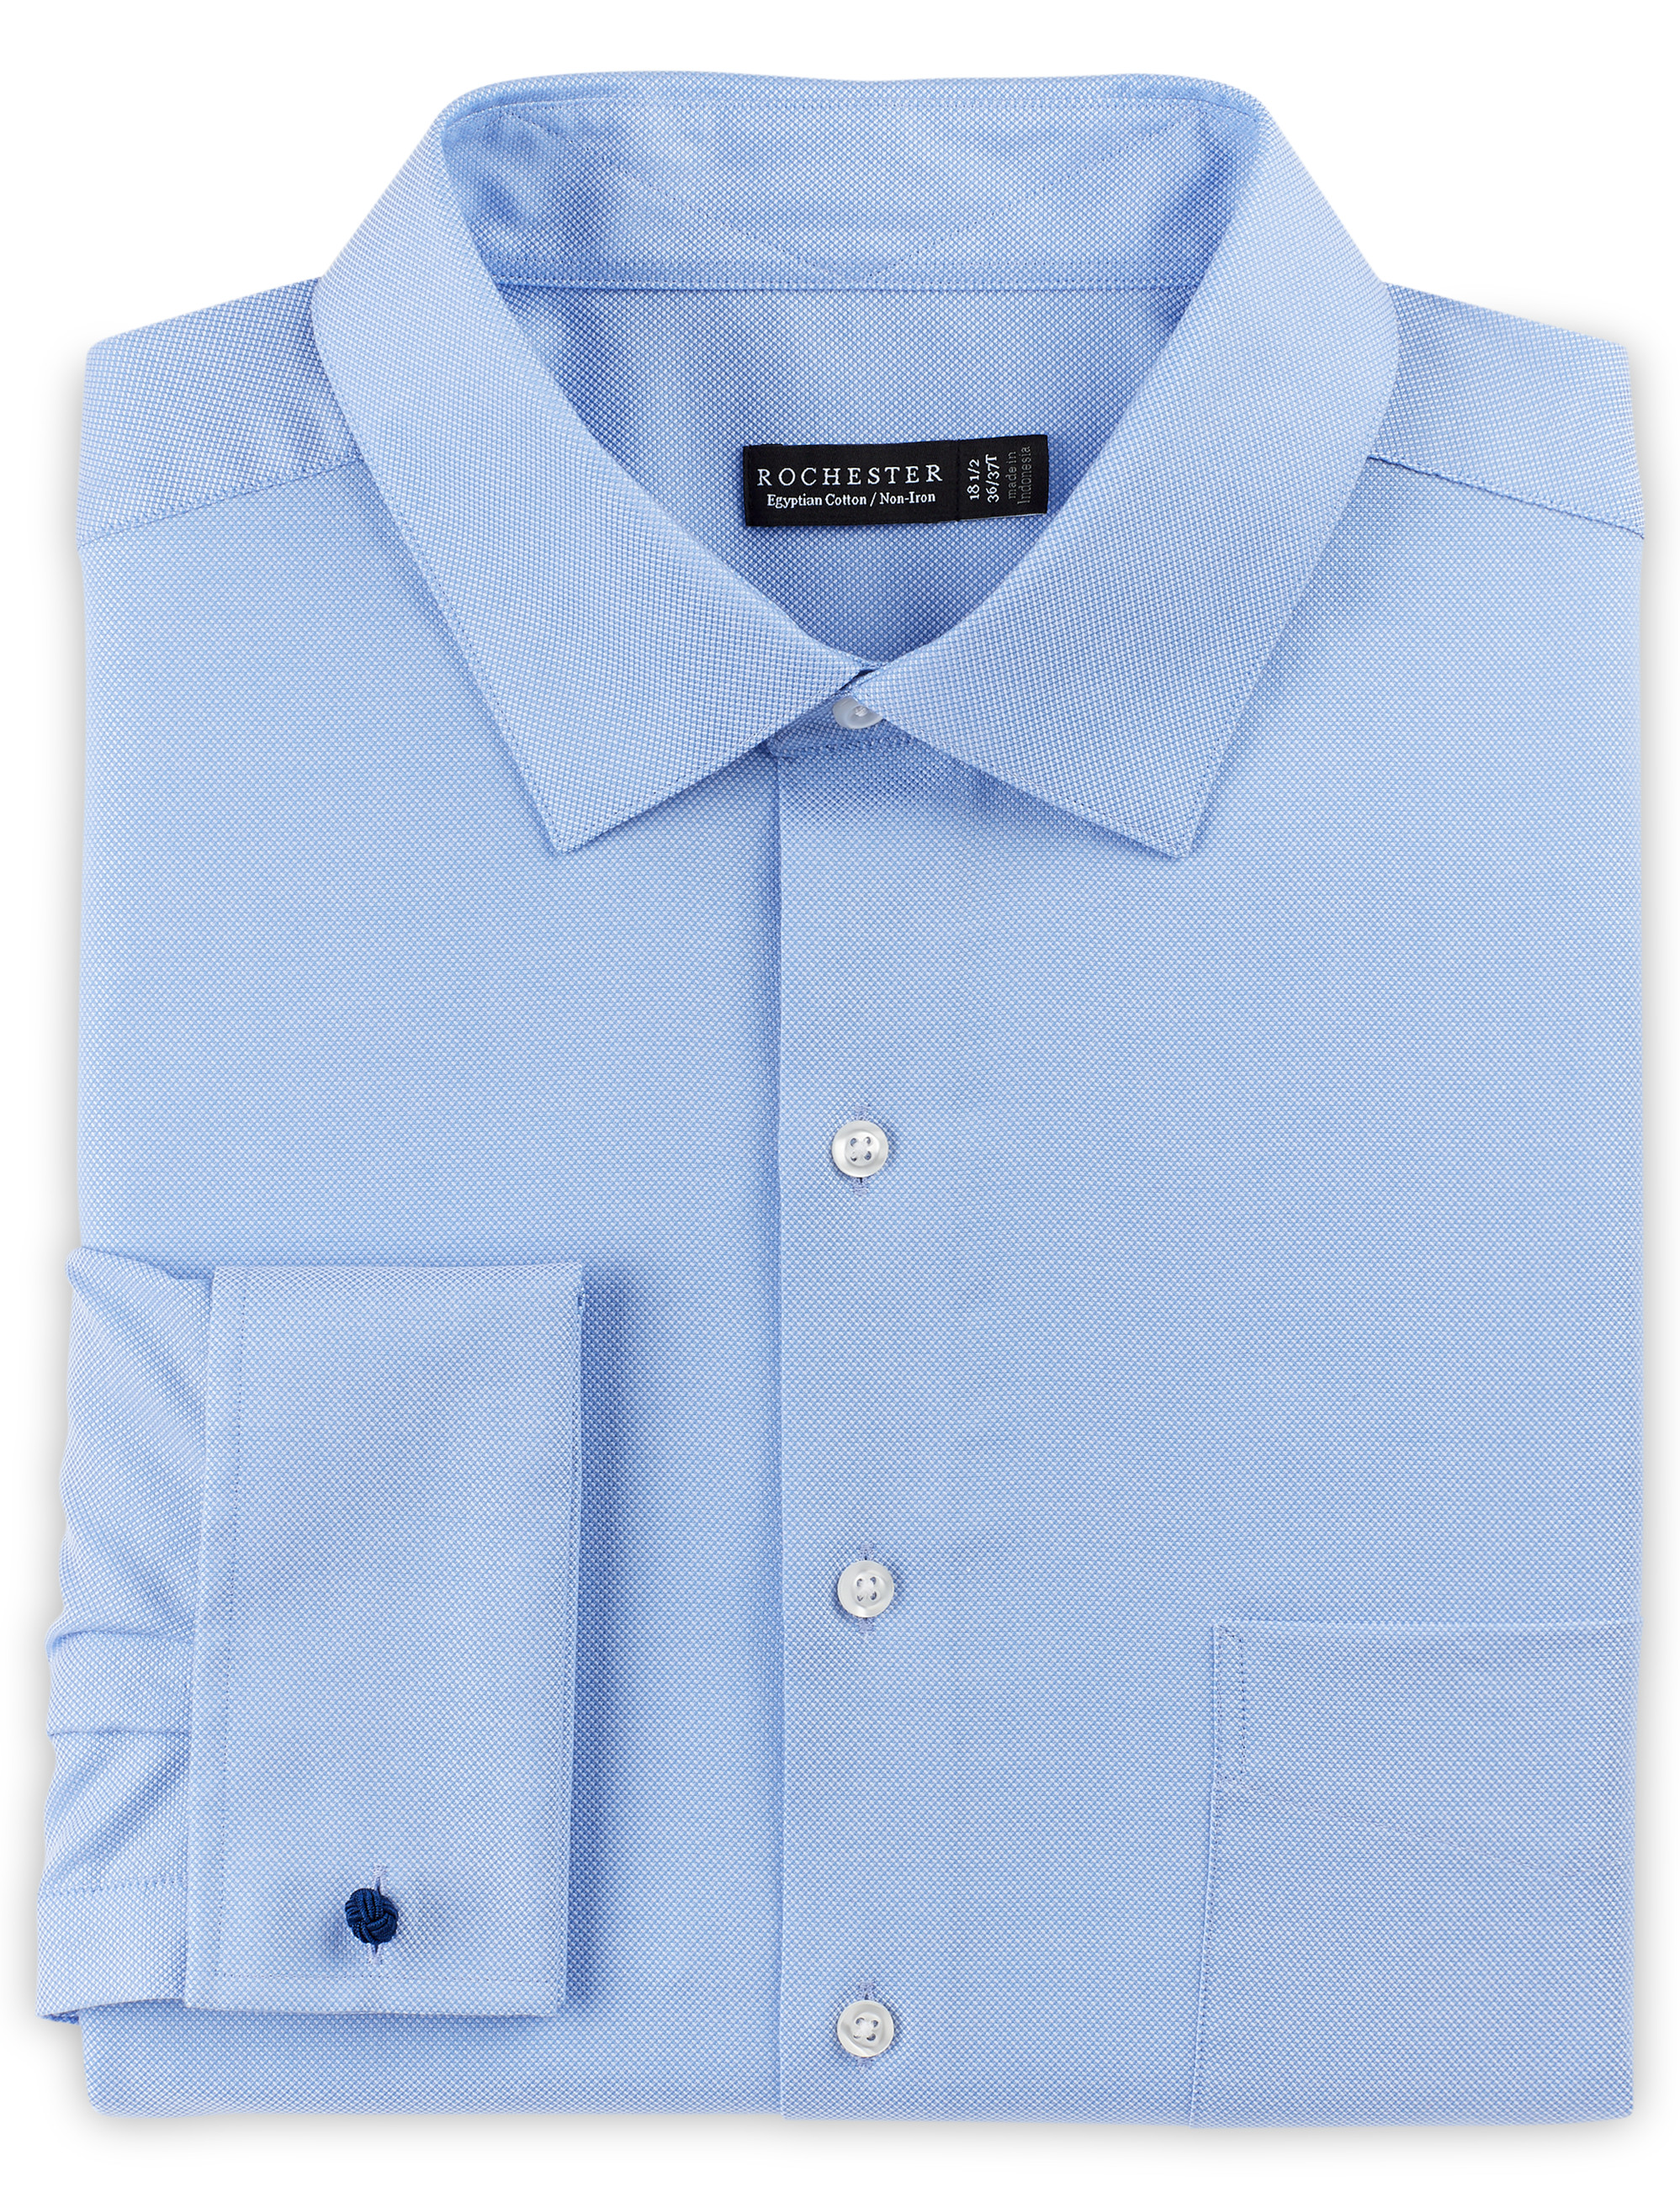 Rochester french cuff oxford dress shirt casual male xl for Big and tall french cuff dress shirts